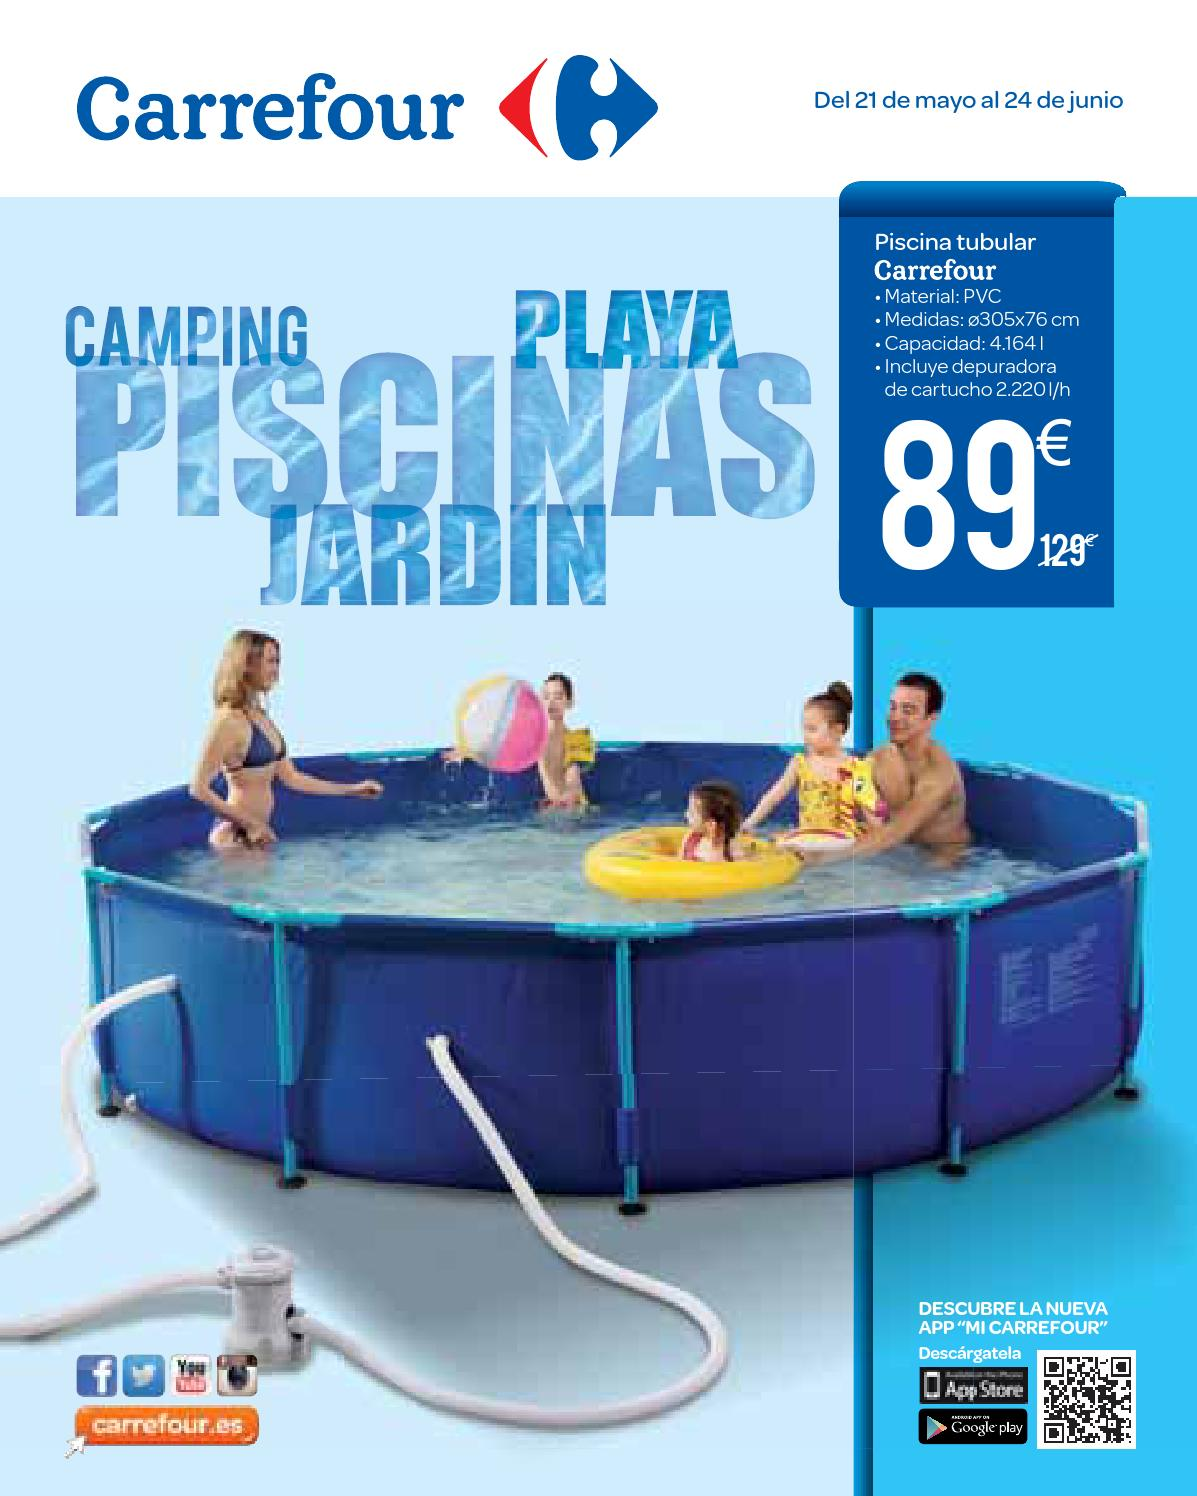 Piscinas y jardin by losdescuentos issuu for Piscinas de plastico precios carrefour